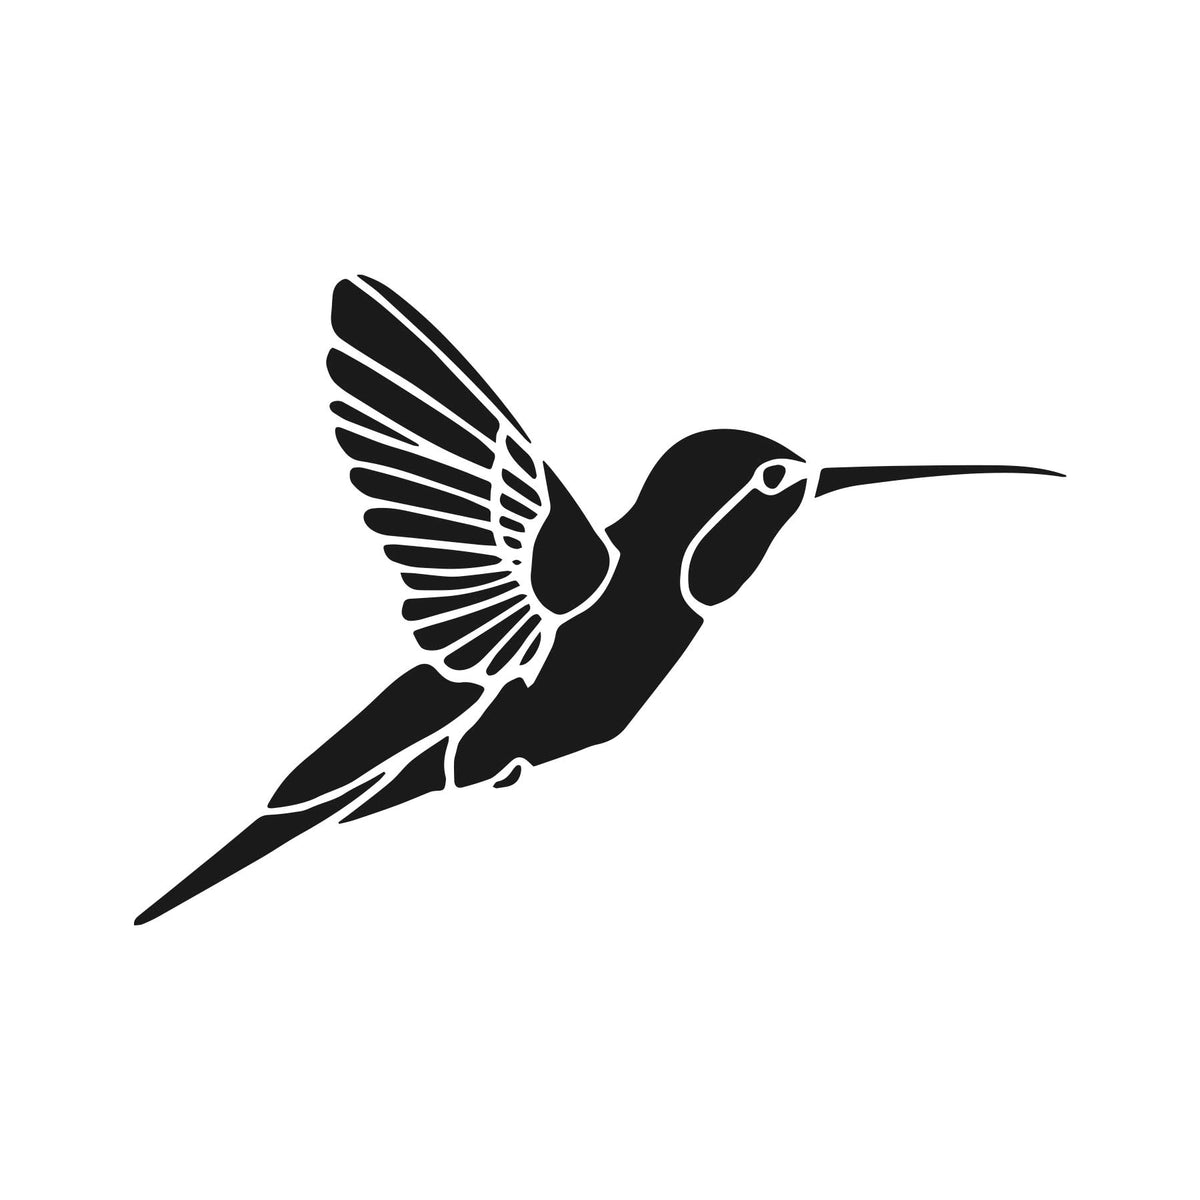 Hummingbird Vinyl Sticker Graphic Decal - Ragged Apparel Screen Printing and Signs - www.nmshirts.com